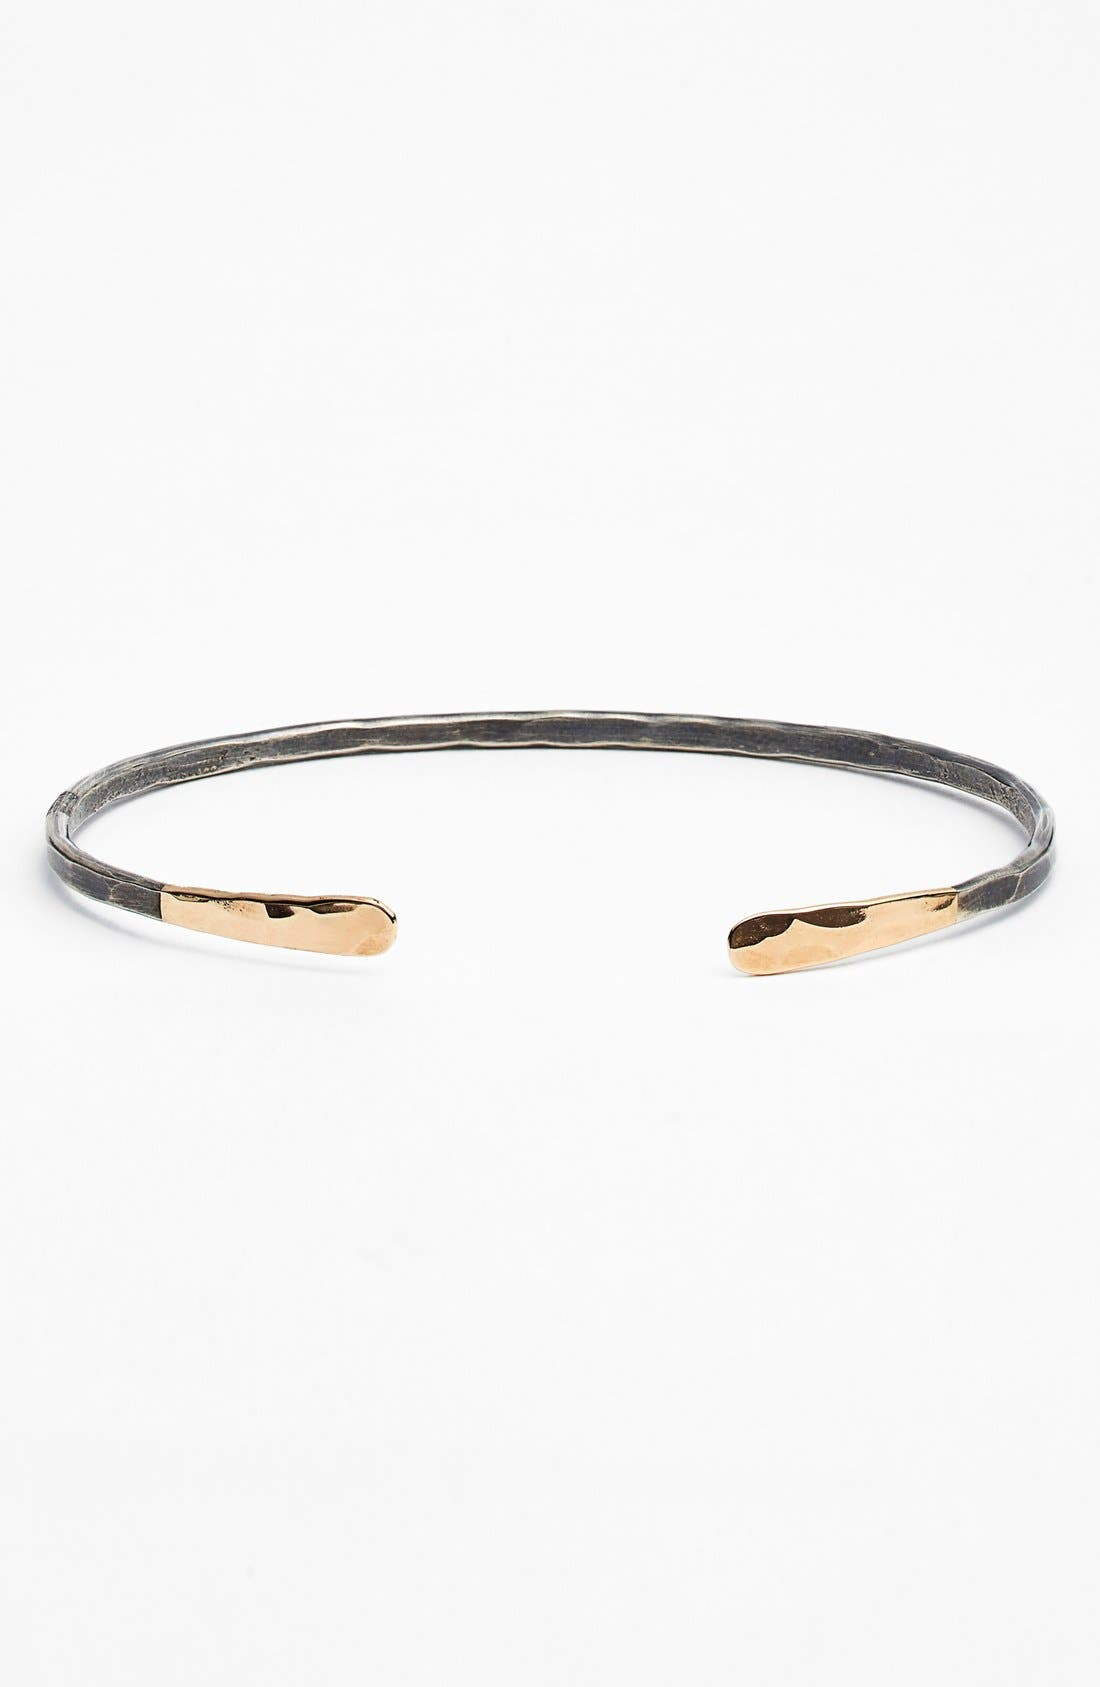 Alternate Image 1 Selected - Melissa Joy Manning Hammered Cuff